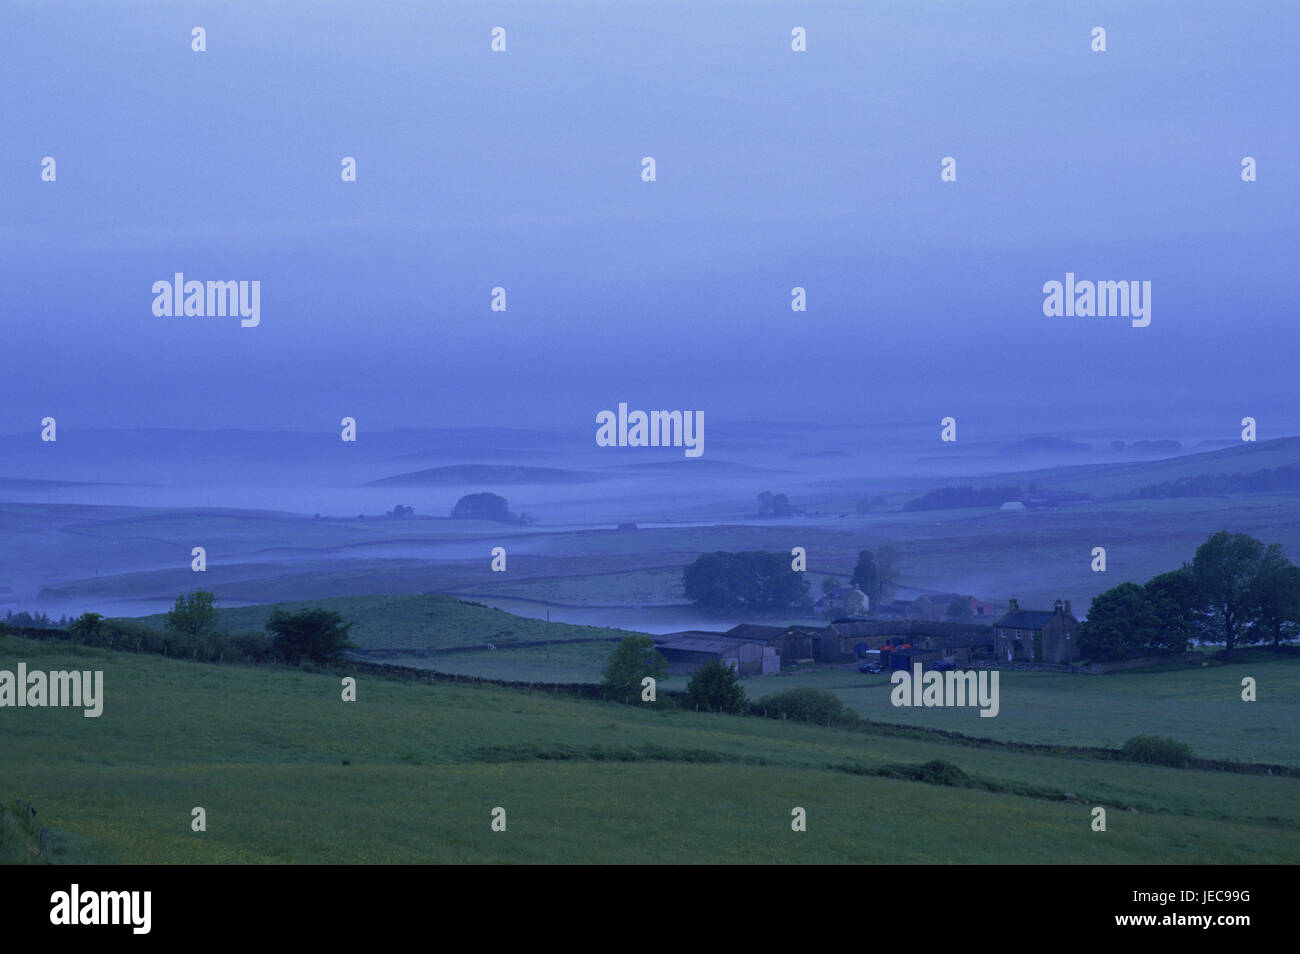 Great Britain, England, Northumbria, scenery, fog, farmhouse, Europe, Northumberland, width, distance, view, meadows, - Stock Image